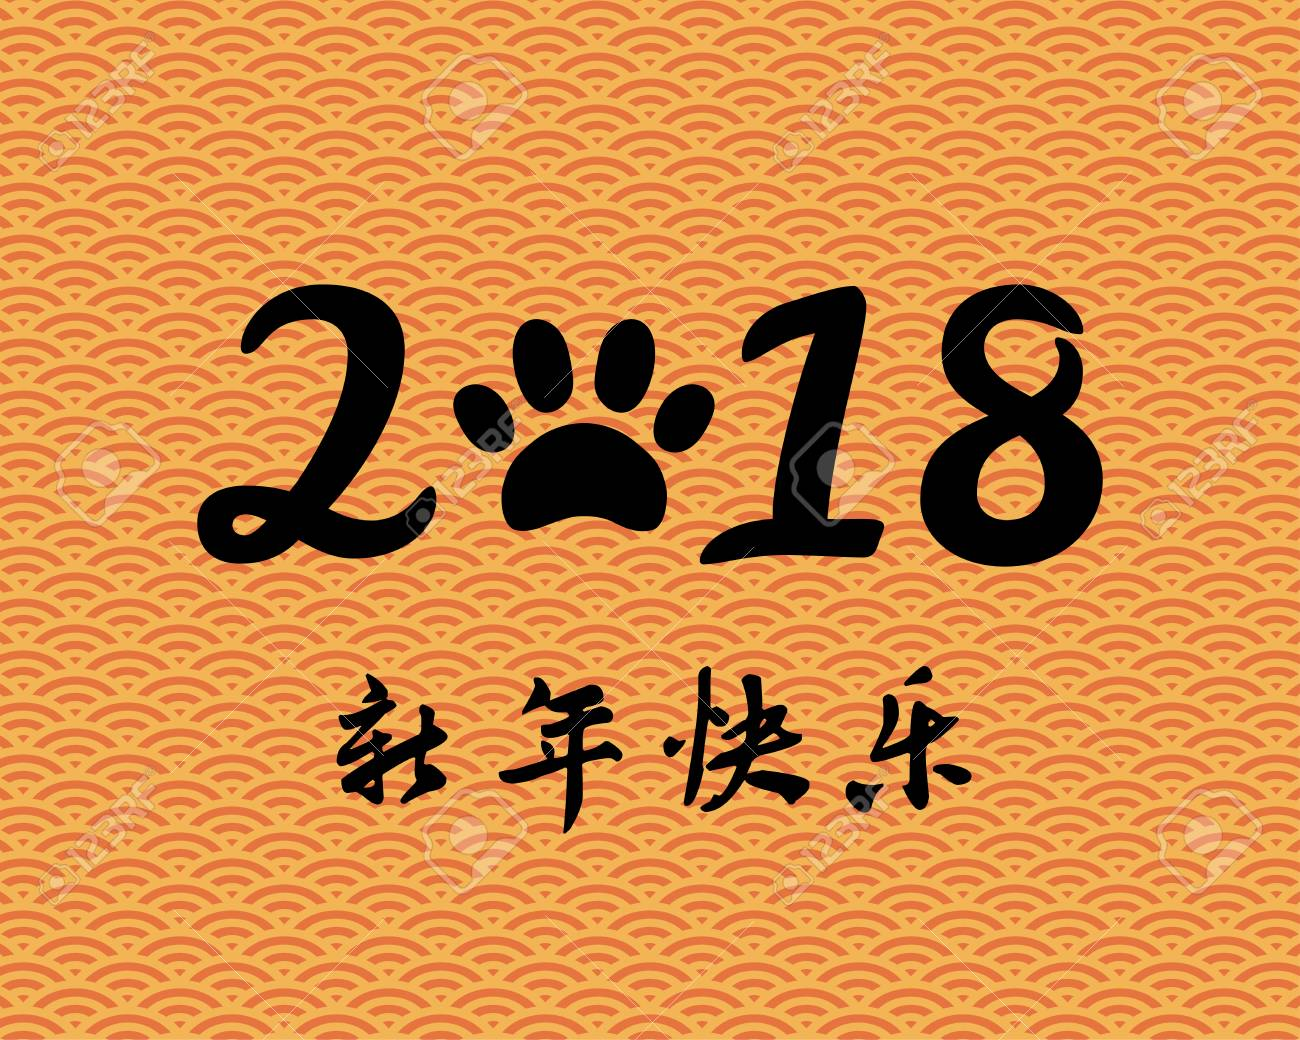 2018 chinese new year greeting card banner with numbers with 2018 chinese new year greeting card banner with numbers with dog paw print typography m4hsunfo